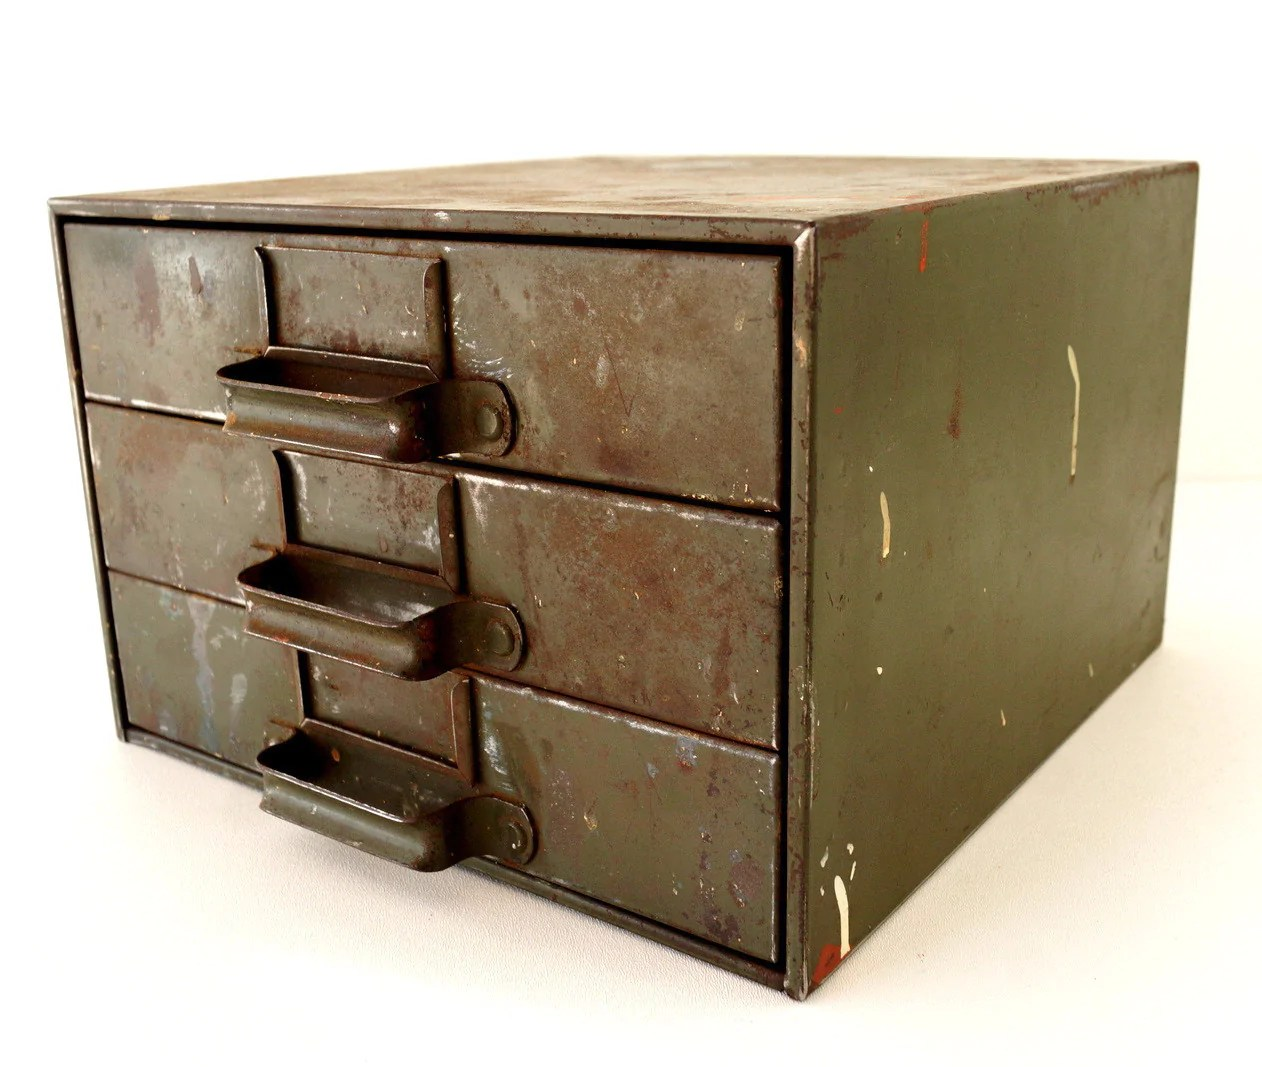 Industrial Vintage Vintage Industrial Hardware Cabinet Parts Bin With 3 Drawers C 1940s